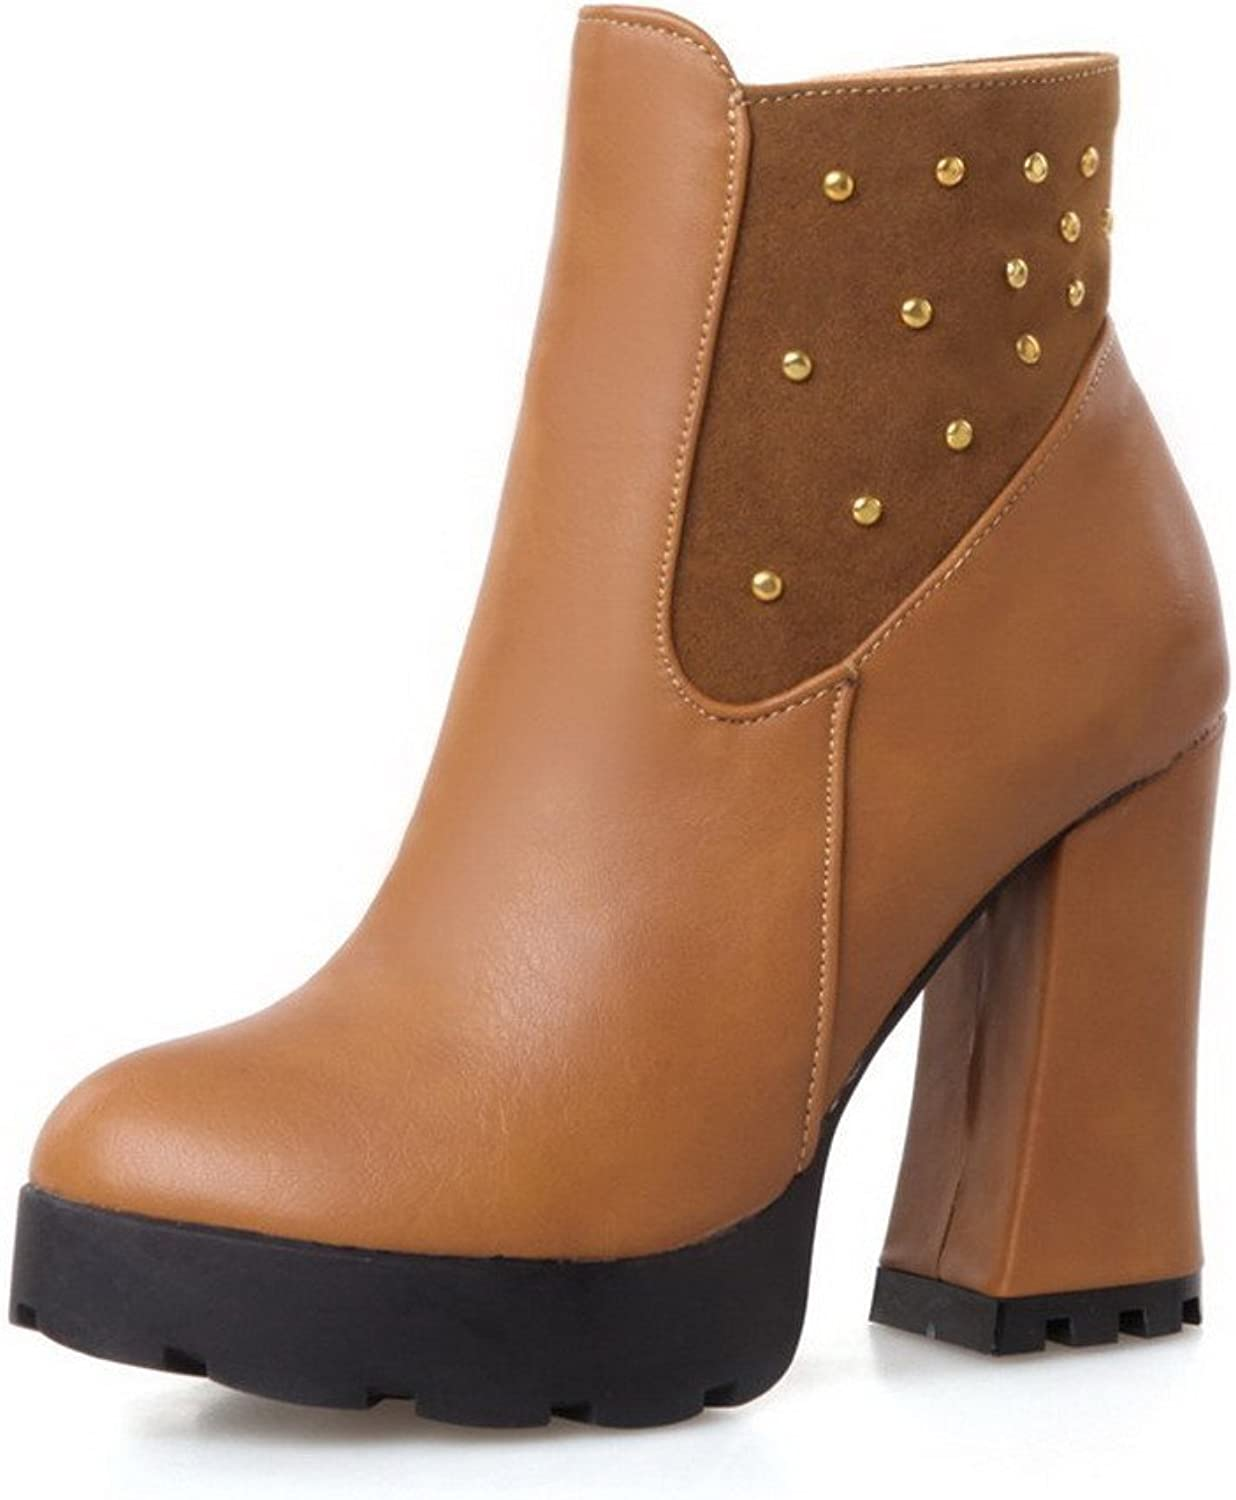 Laolaooo shoes Women's Low top Solid Zipper Round Closed Toe High-Heels Boots